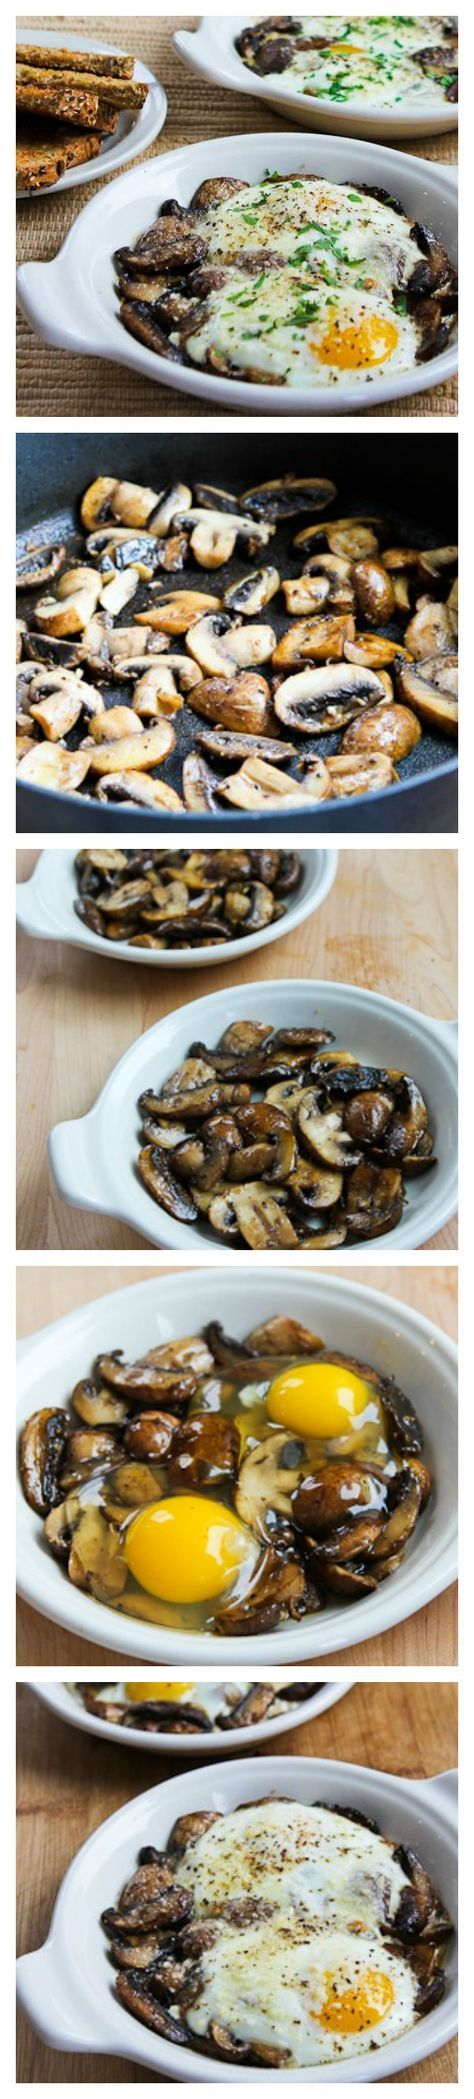 Baked Eggs with Mushrooms and Parmesan are an easy-but-impressive breakfast for guests, or just when you want something a bit more special for breakfast.  The recipe has a great tip for getting the egg white cooked without over-cooking the yolk. Eat with toast or skip the toast for a Low-Carb and Gluten-Free breakfast. [found on http://KalynsKitchen.com]